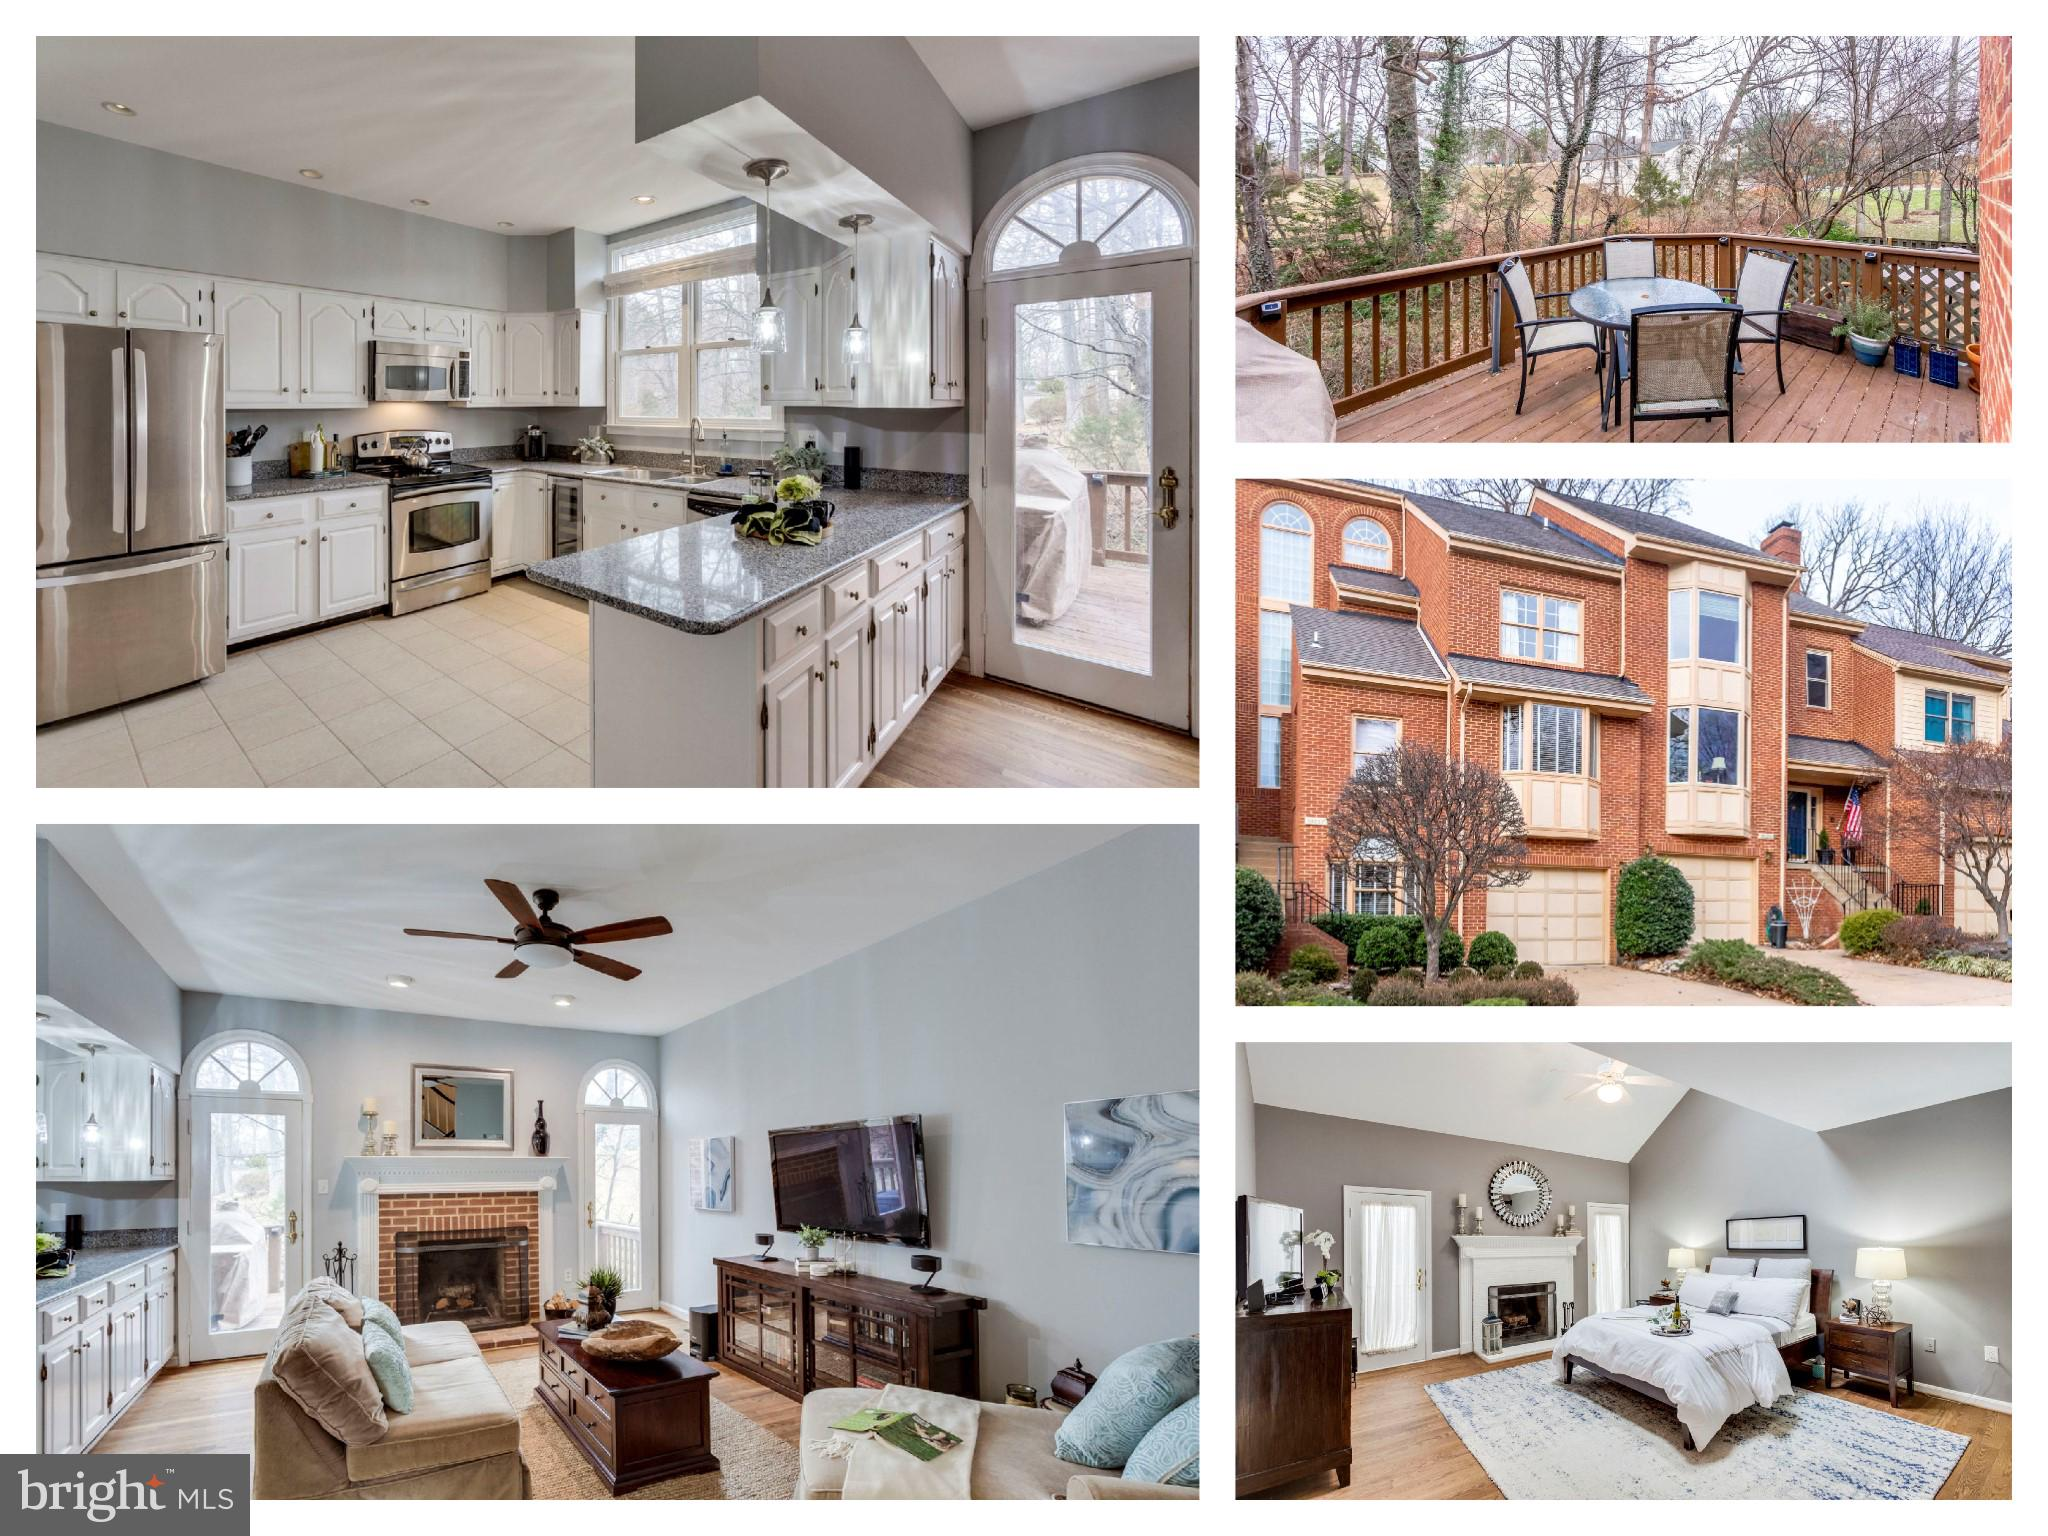 10202 ASPEN WILLOW DRIVE, FAIRFAX, VA 22032